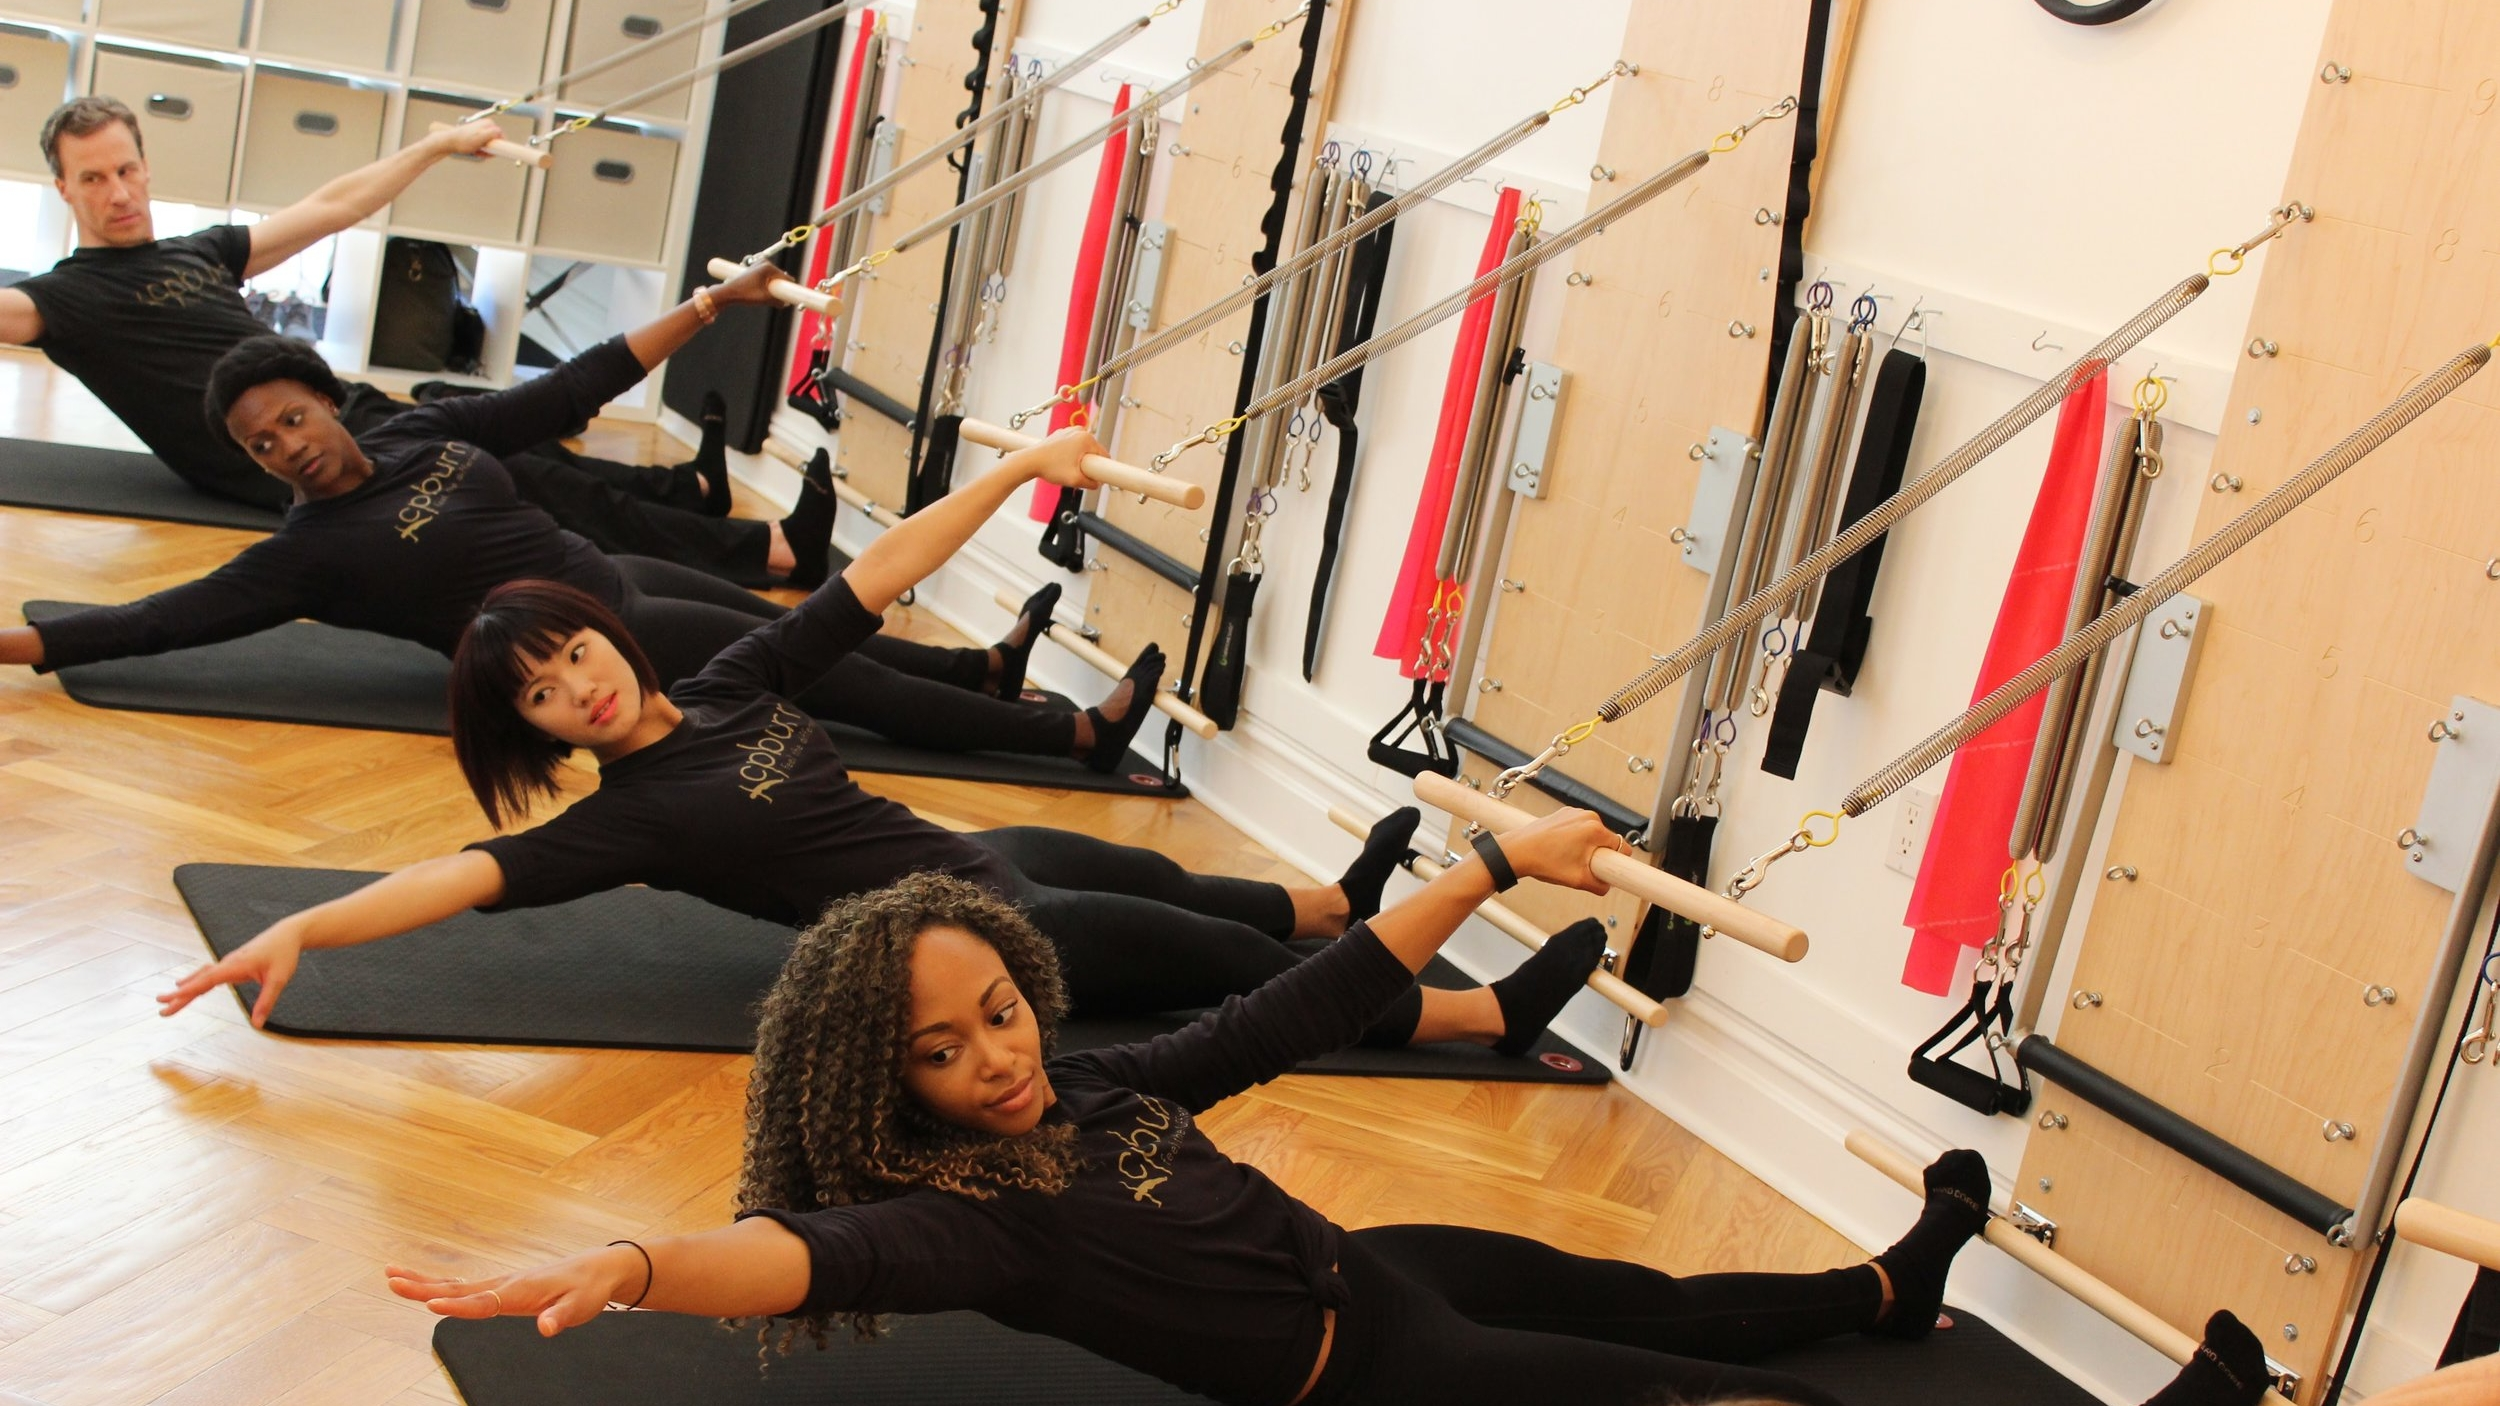 Tower Benefits - IMPROVE FLEXIBILITYBUILD STRENGTH & ENDURANCEGREAT FOR PILATES BEGINNERS